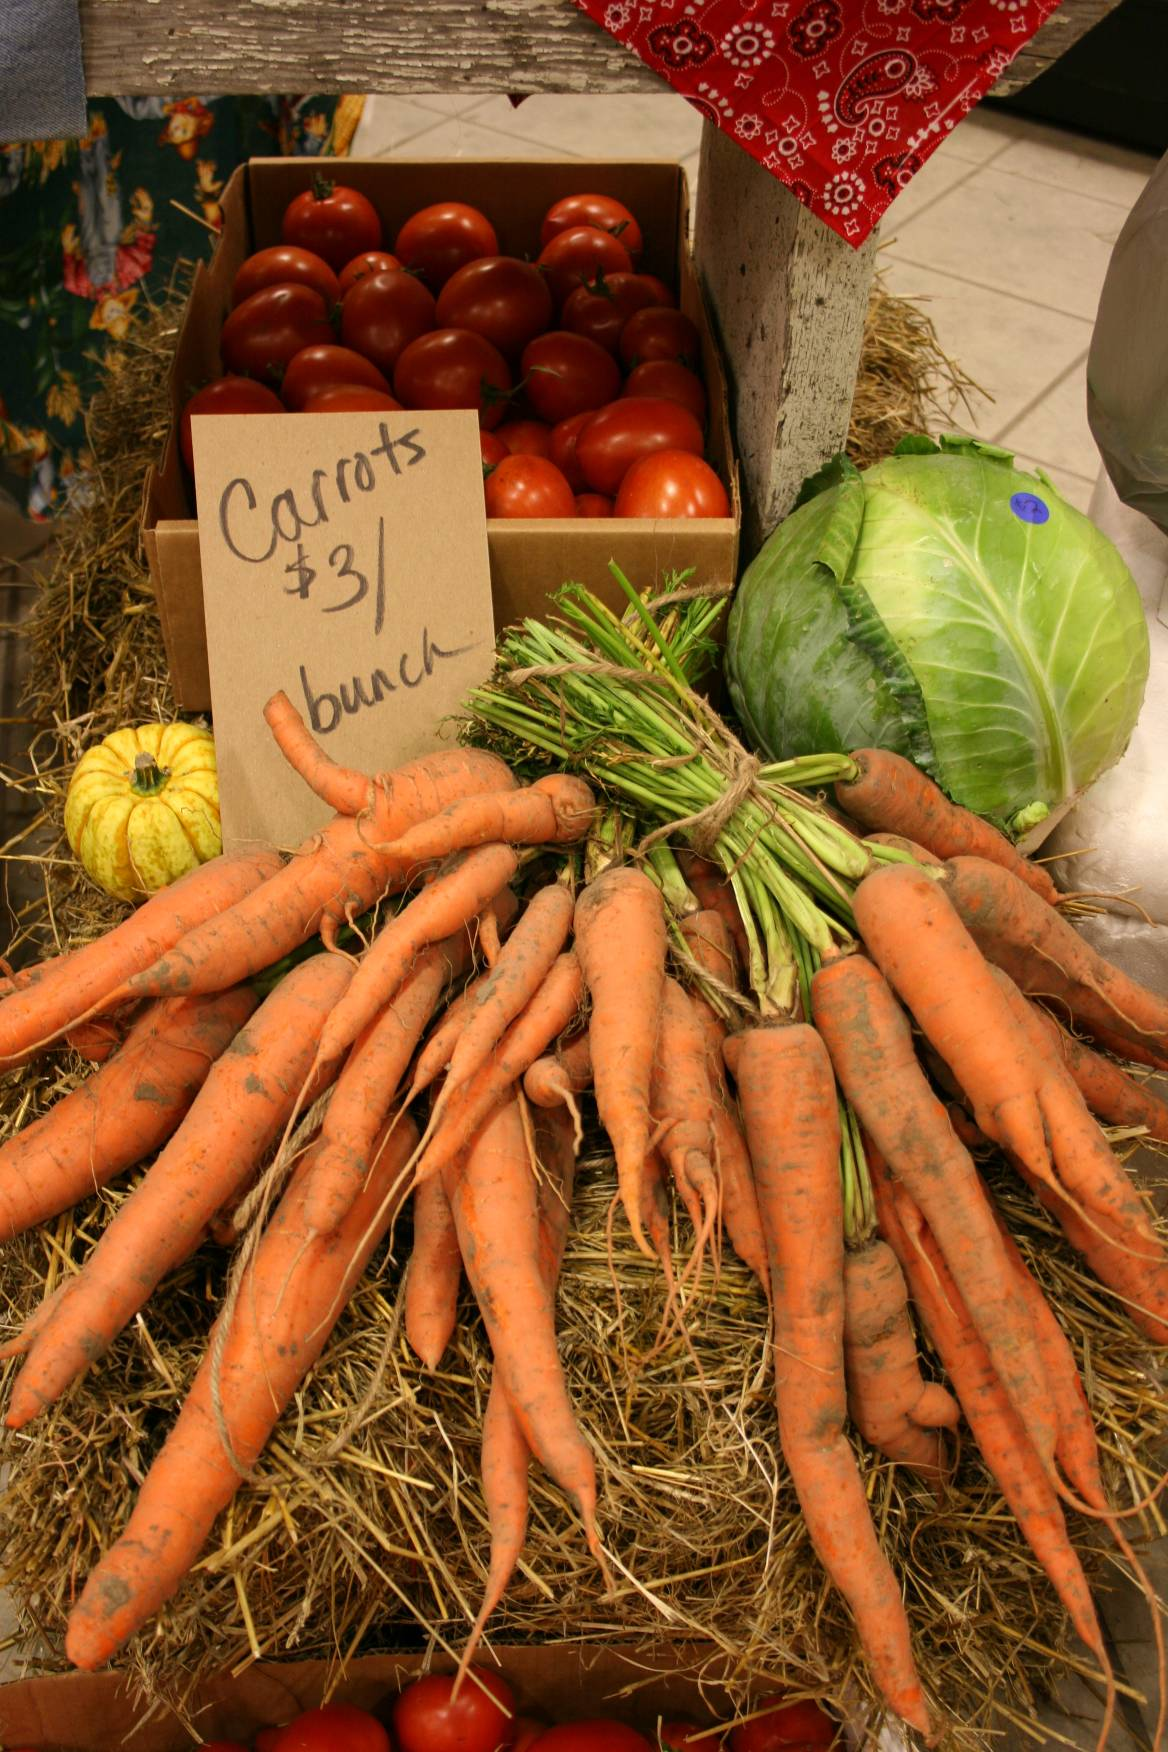 Fresh produce filled the country store shelves.